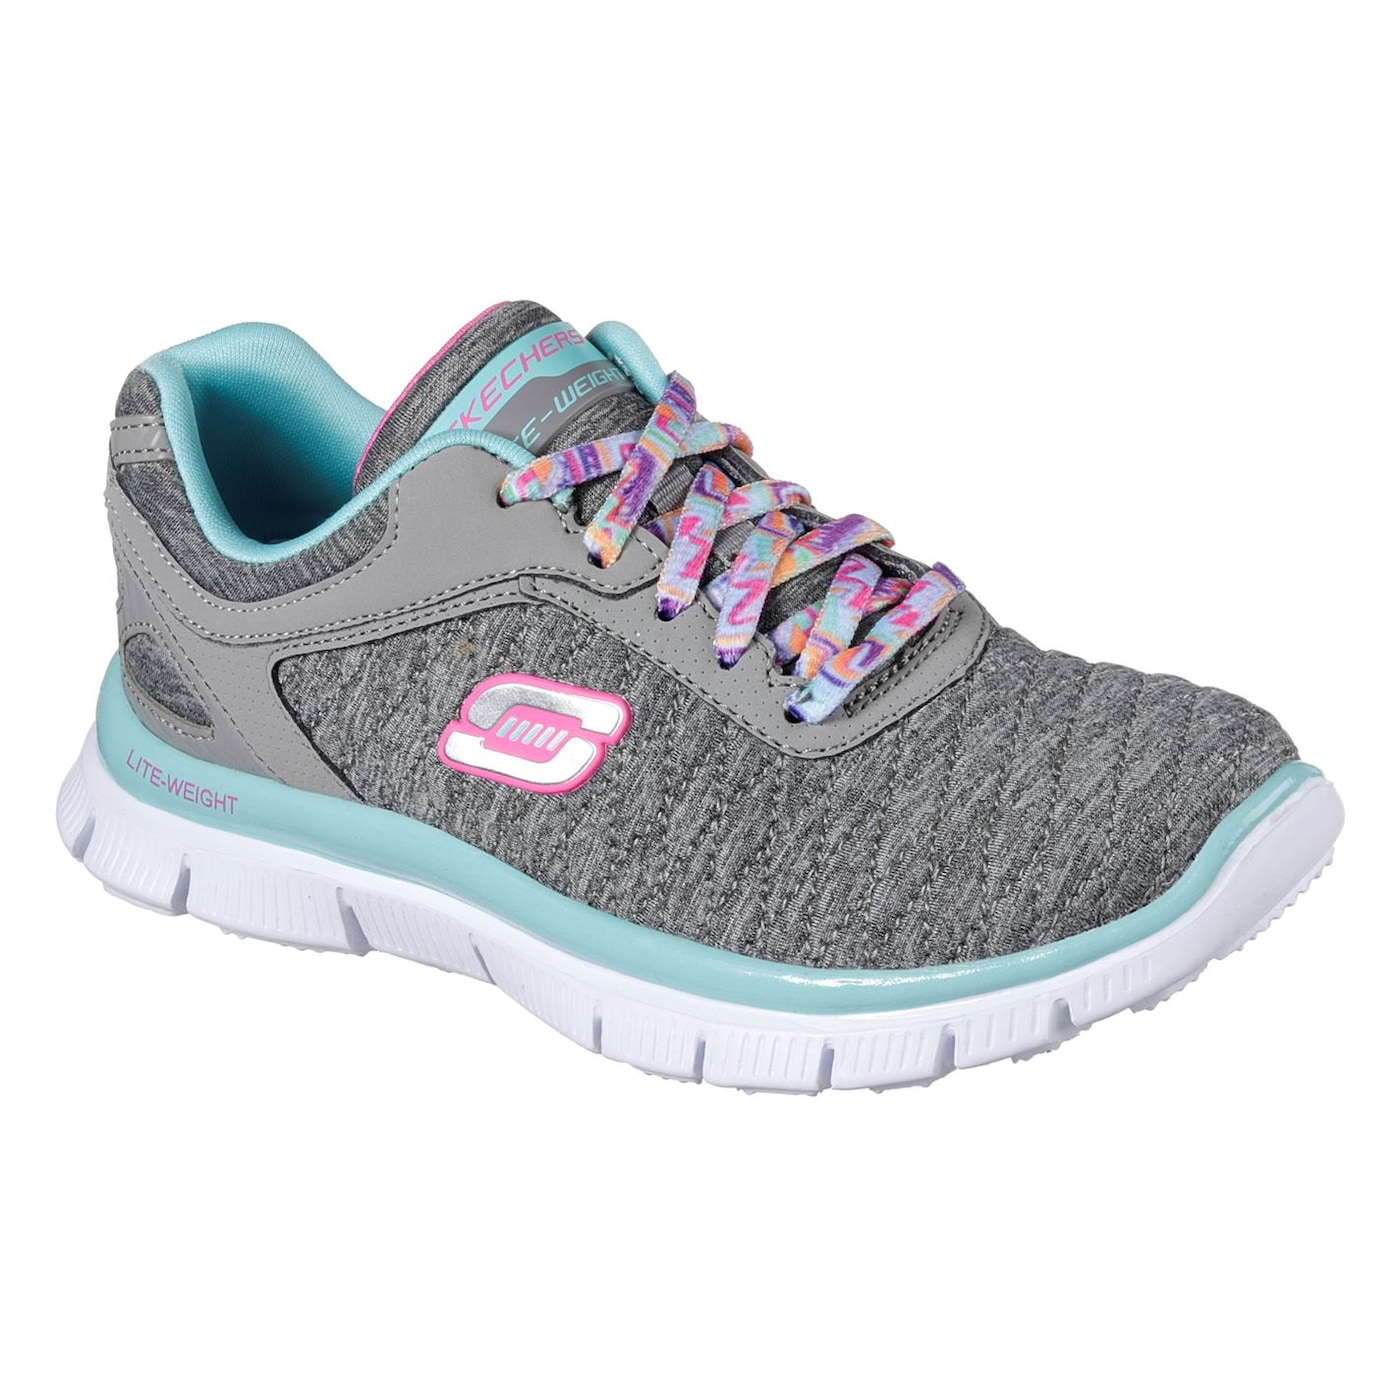 Skechers Flex Appeal Trainers Girls